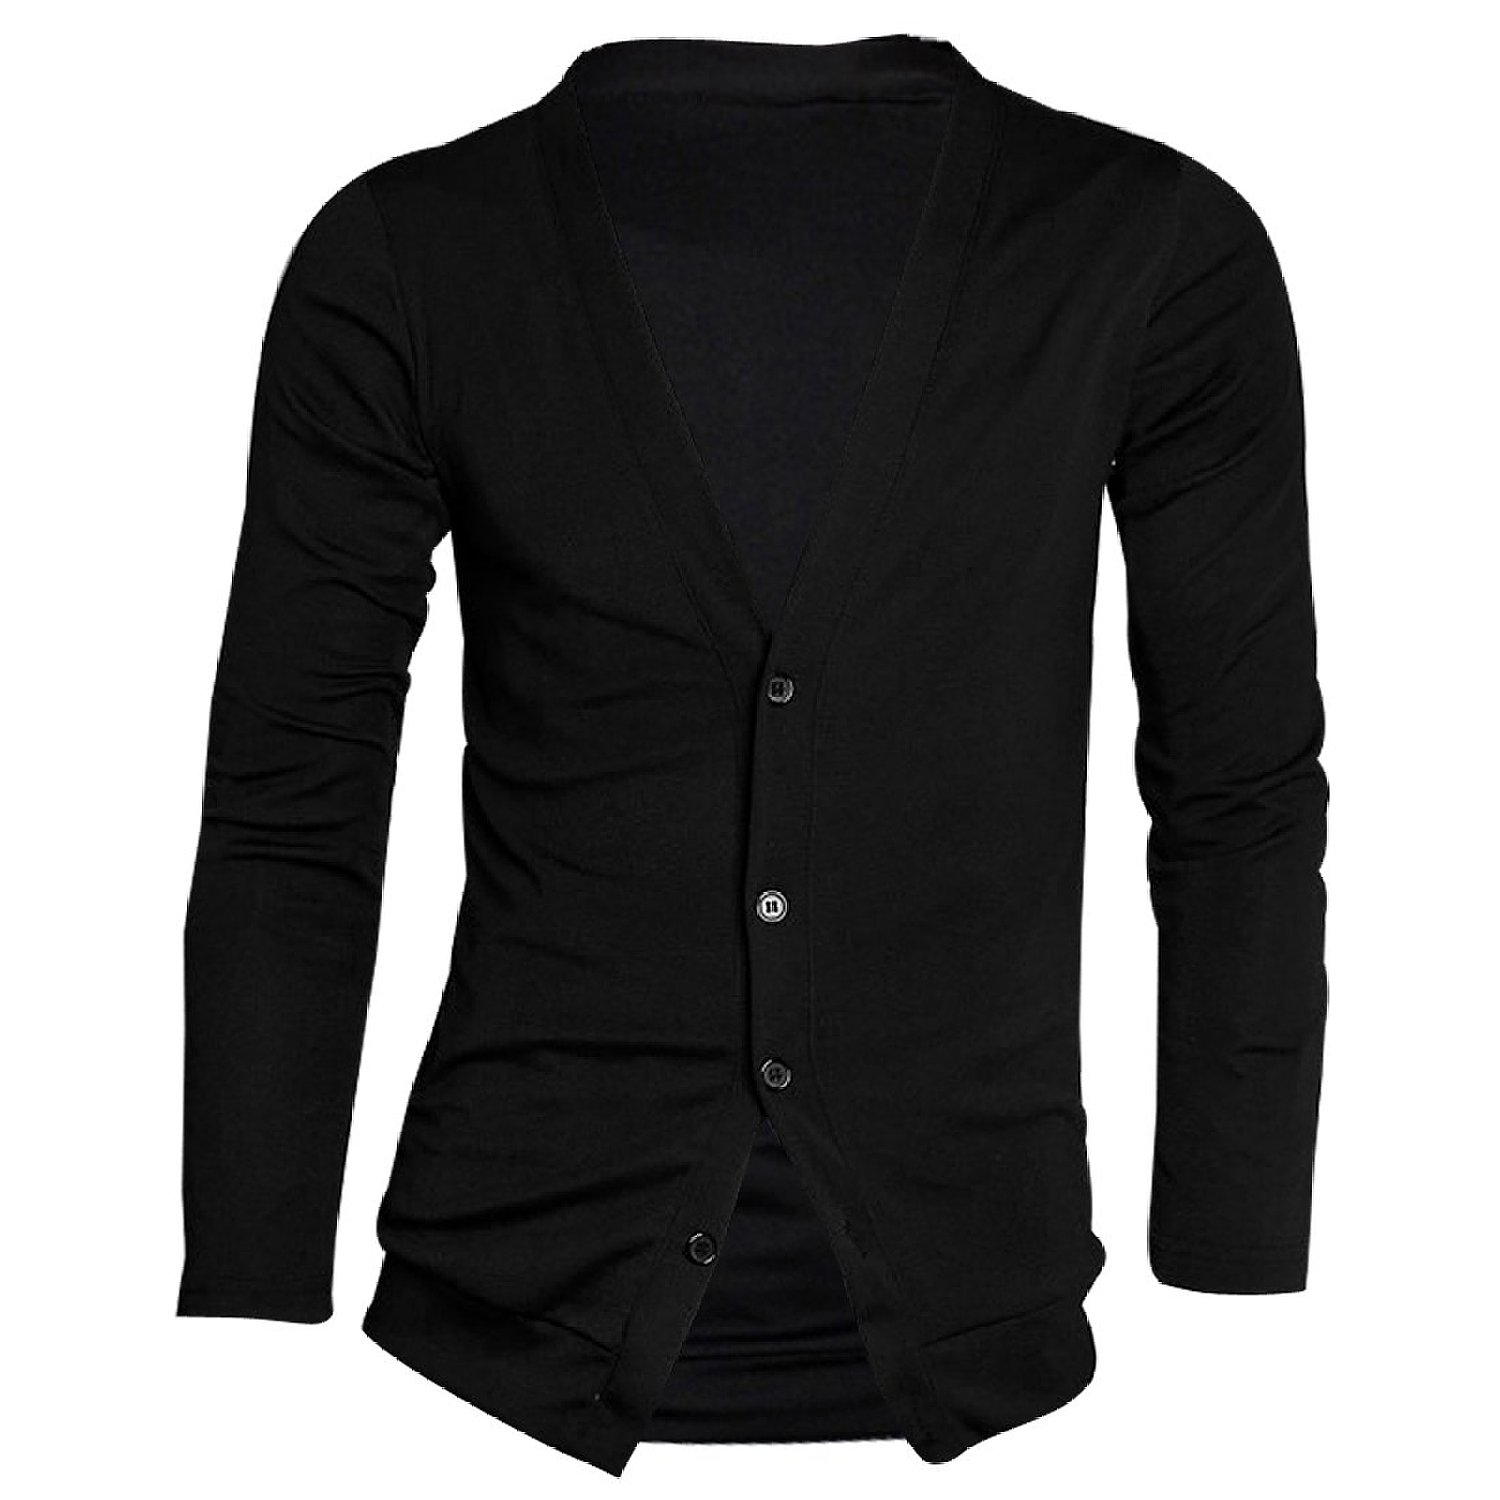 Allegra K Men Deep V Neck Long Sleeve Casual Slim Button Down Cardigans at Amazon Men's Clothing store